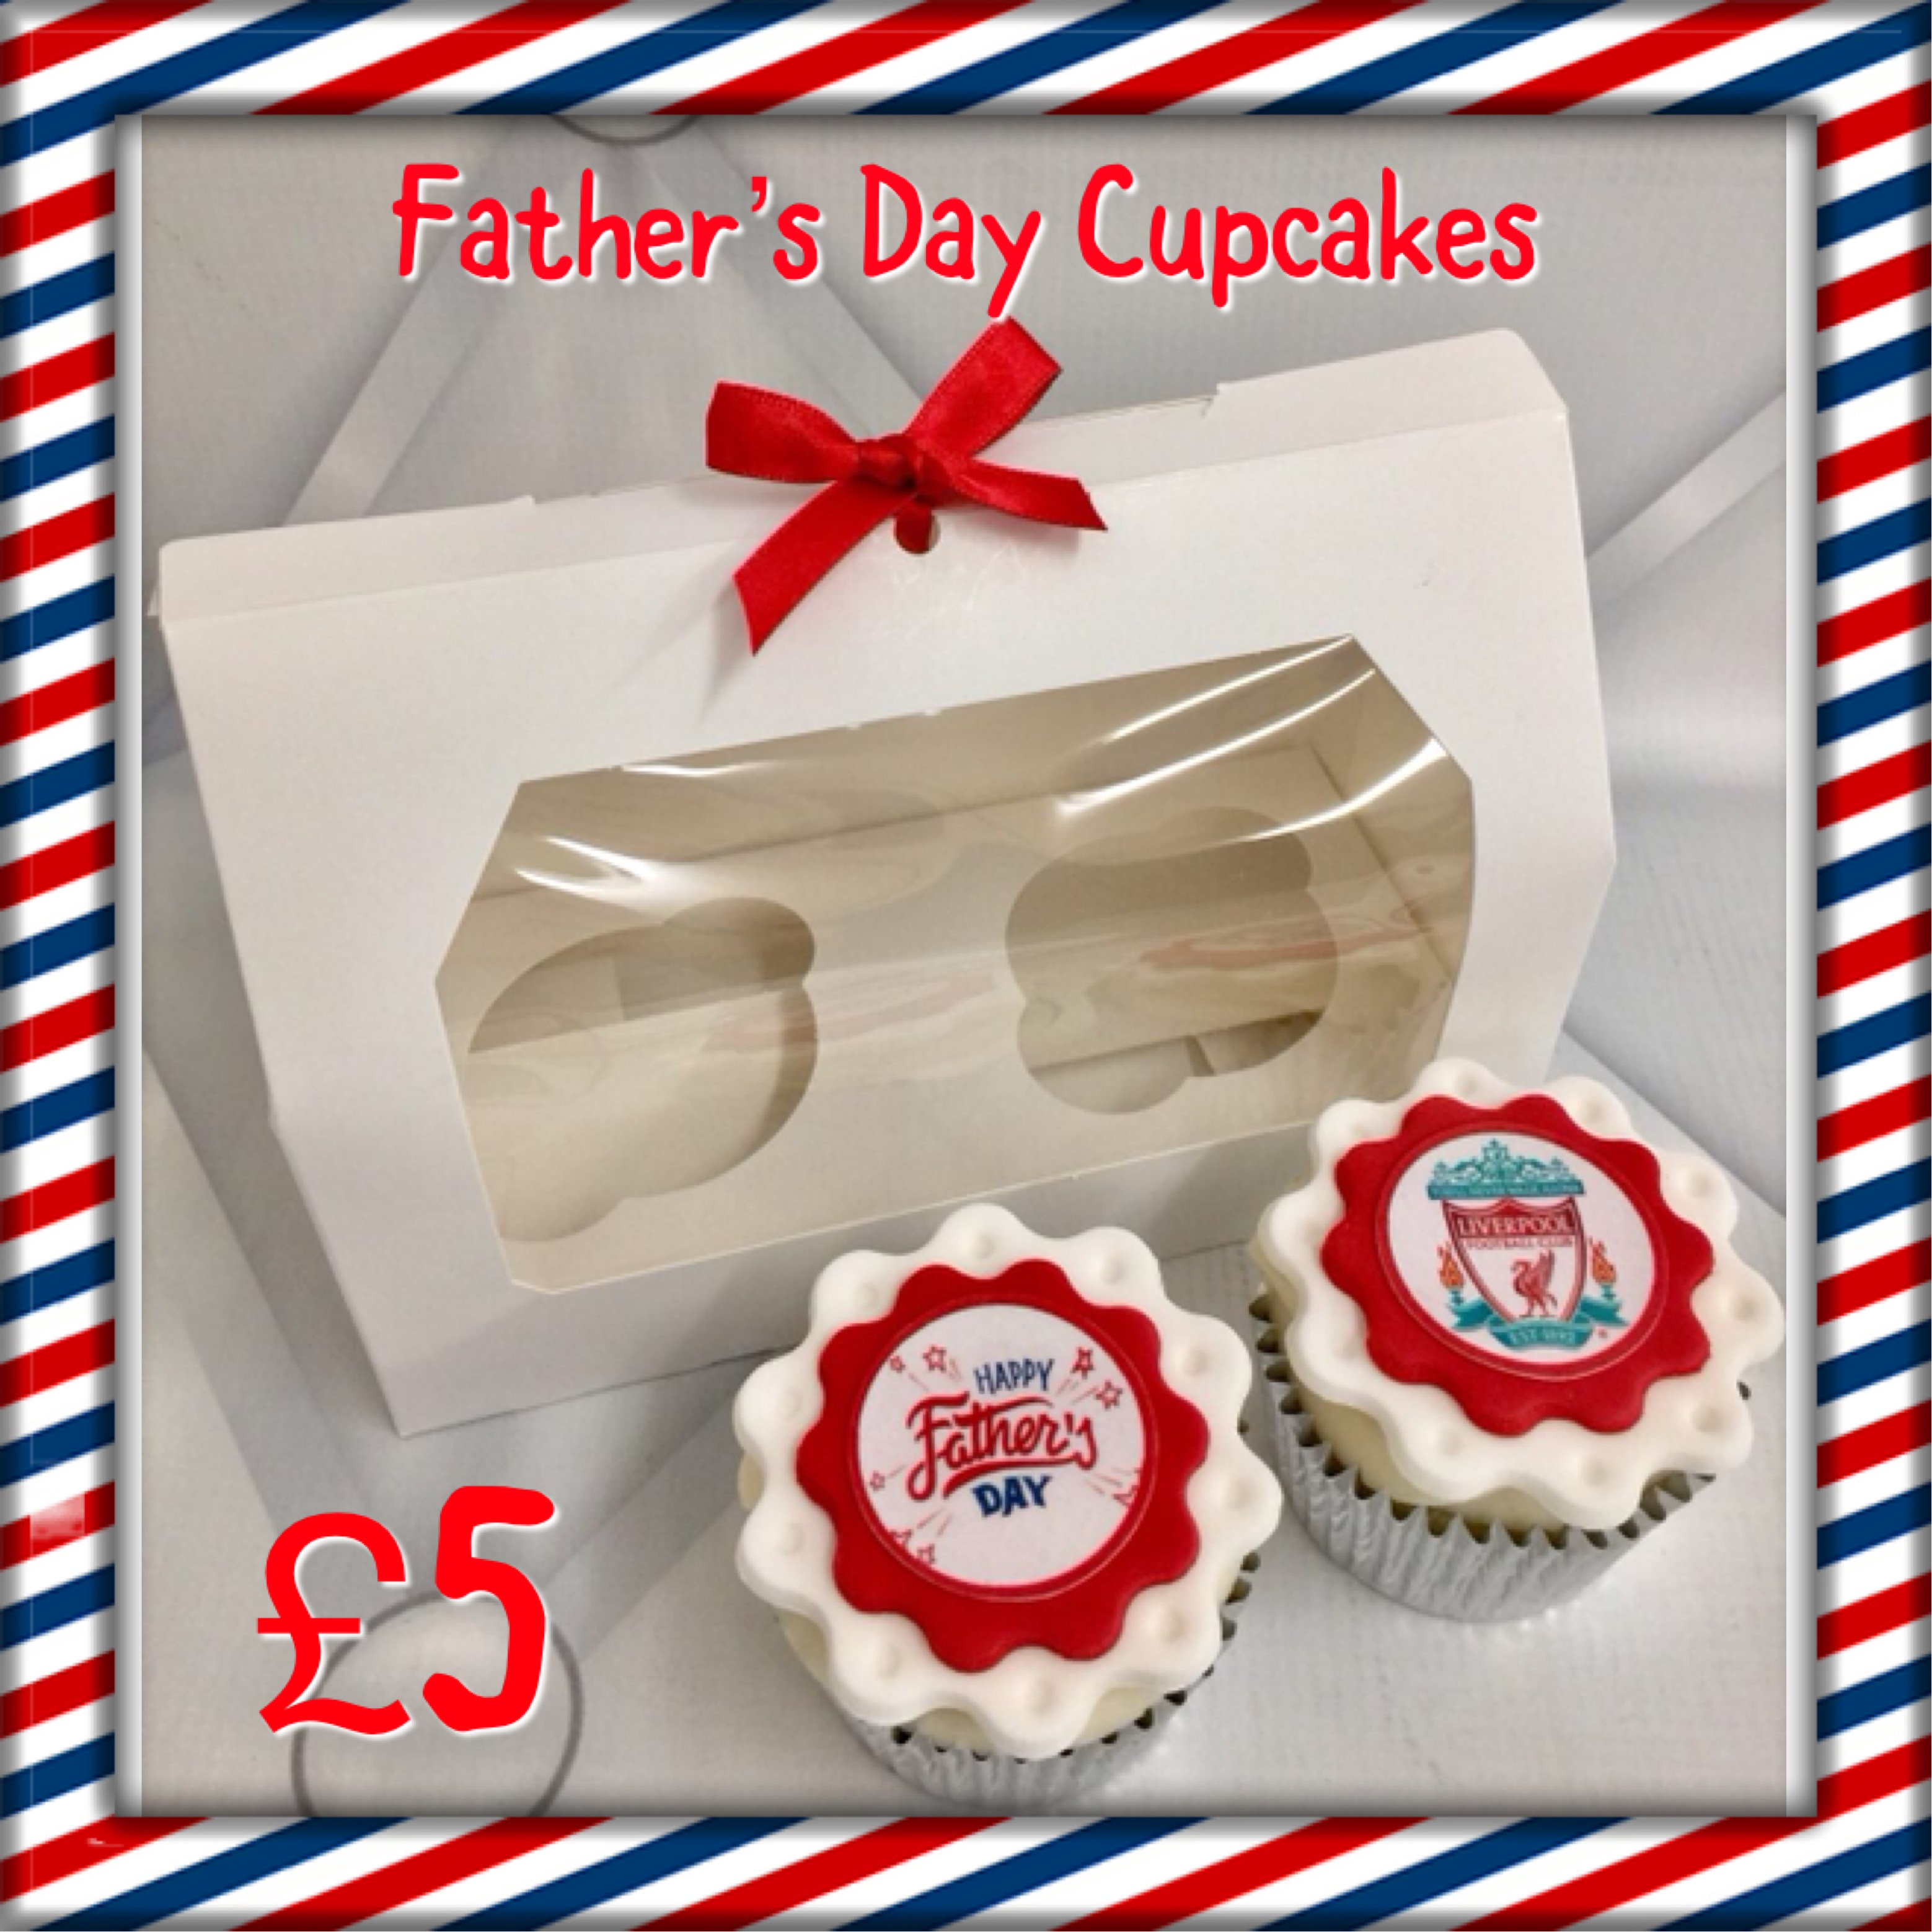 LFC Father's Day Cupcakes